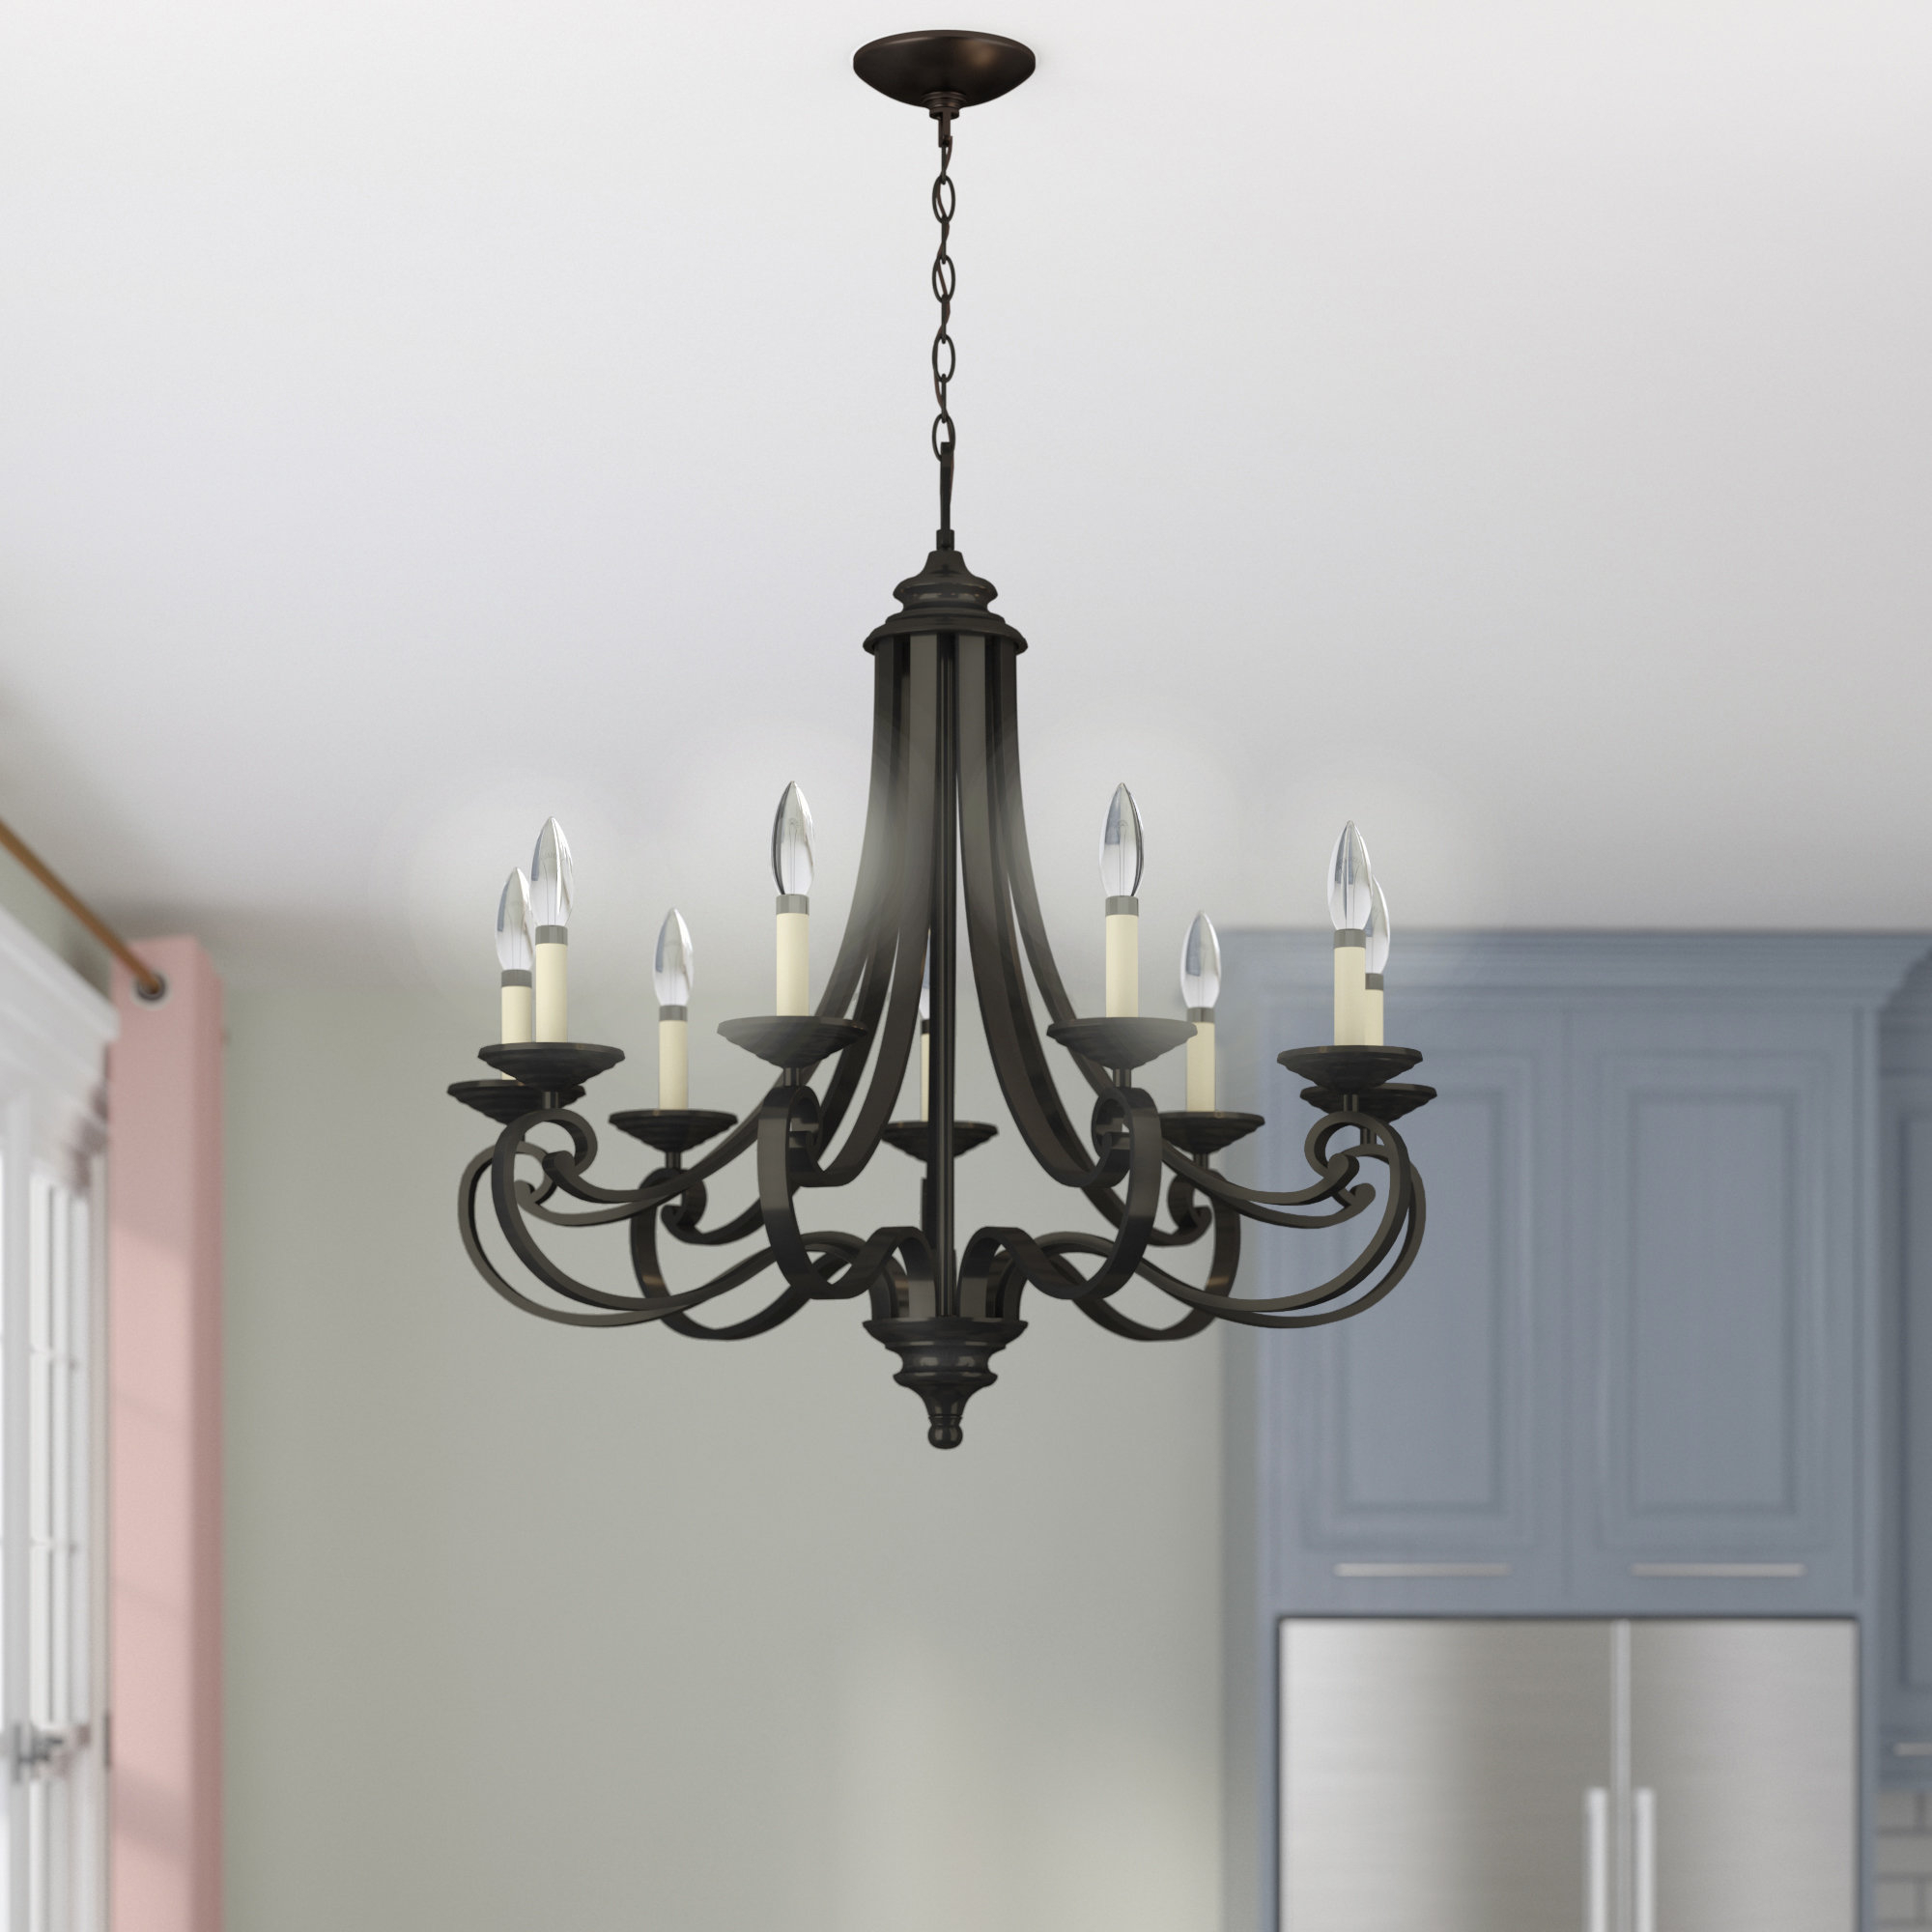 Most Recently Released Mcknight 9 Light Chandeliers Intended For Mcknight 9 Light Chandelier (View 12 of 20)